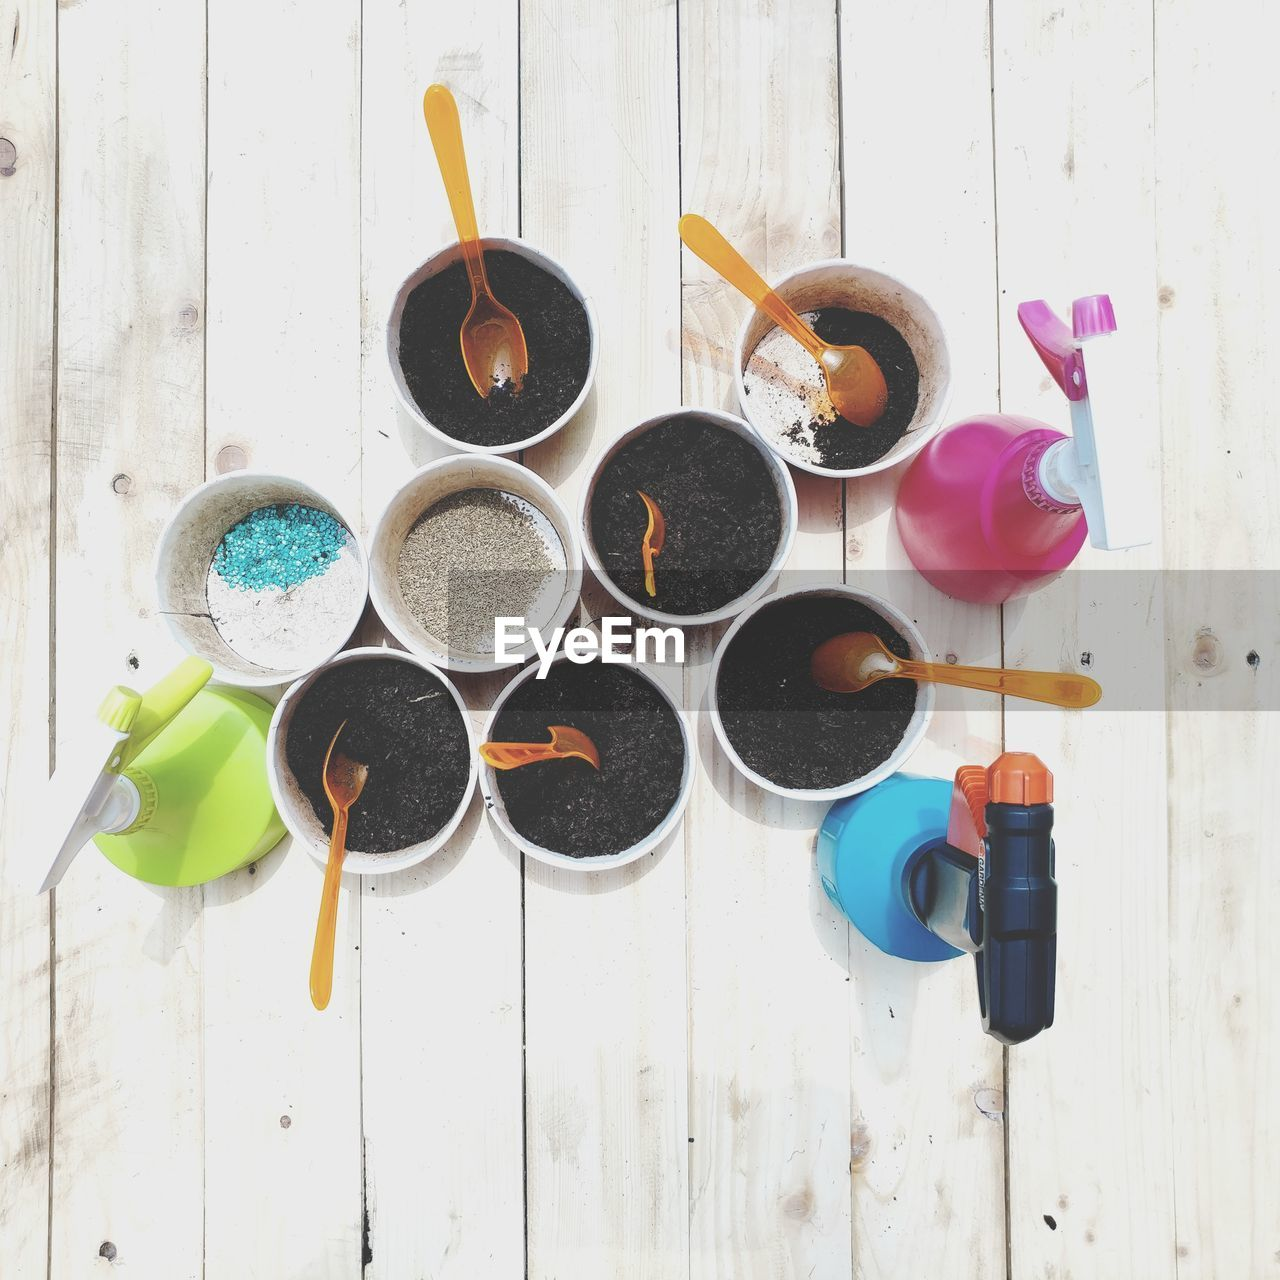 no people, table, high angle view, indoors, still life, directly above, variation, multi colored, choice, wood - material, kitchen utensil, group of objects, cup, food and drink, circle, mug, day, spoon, container, eating utensil